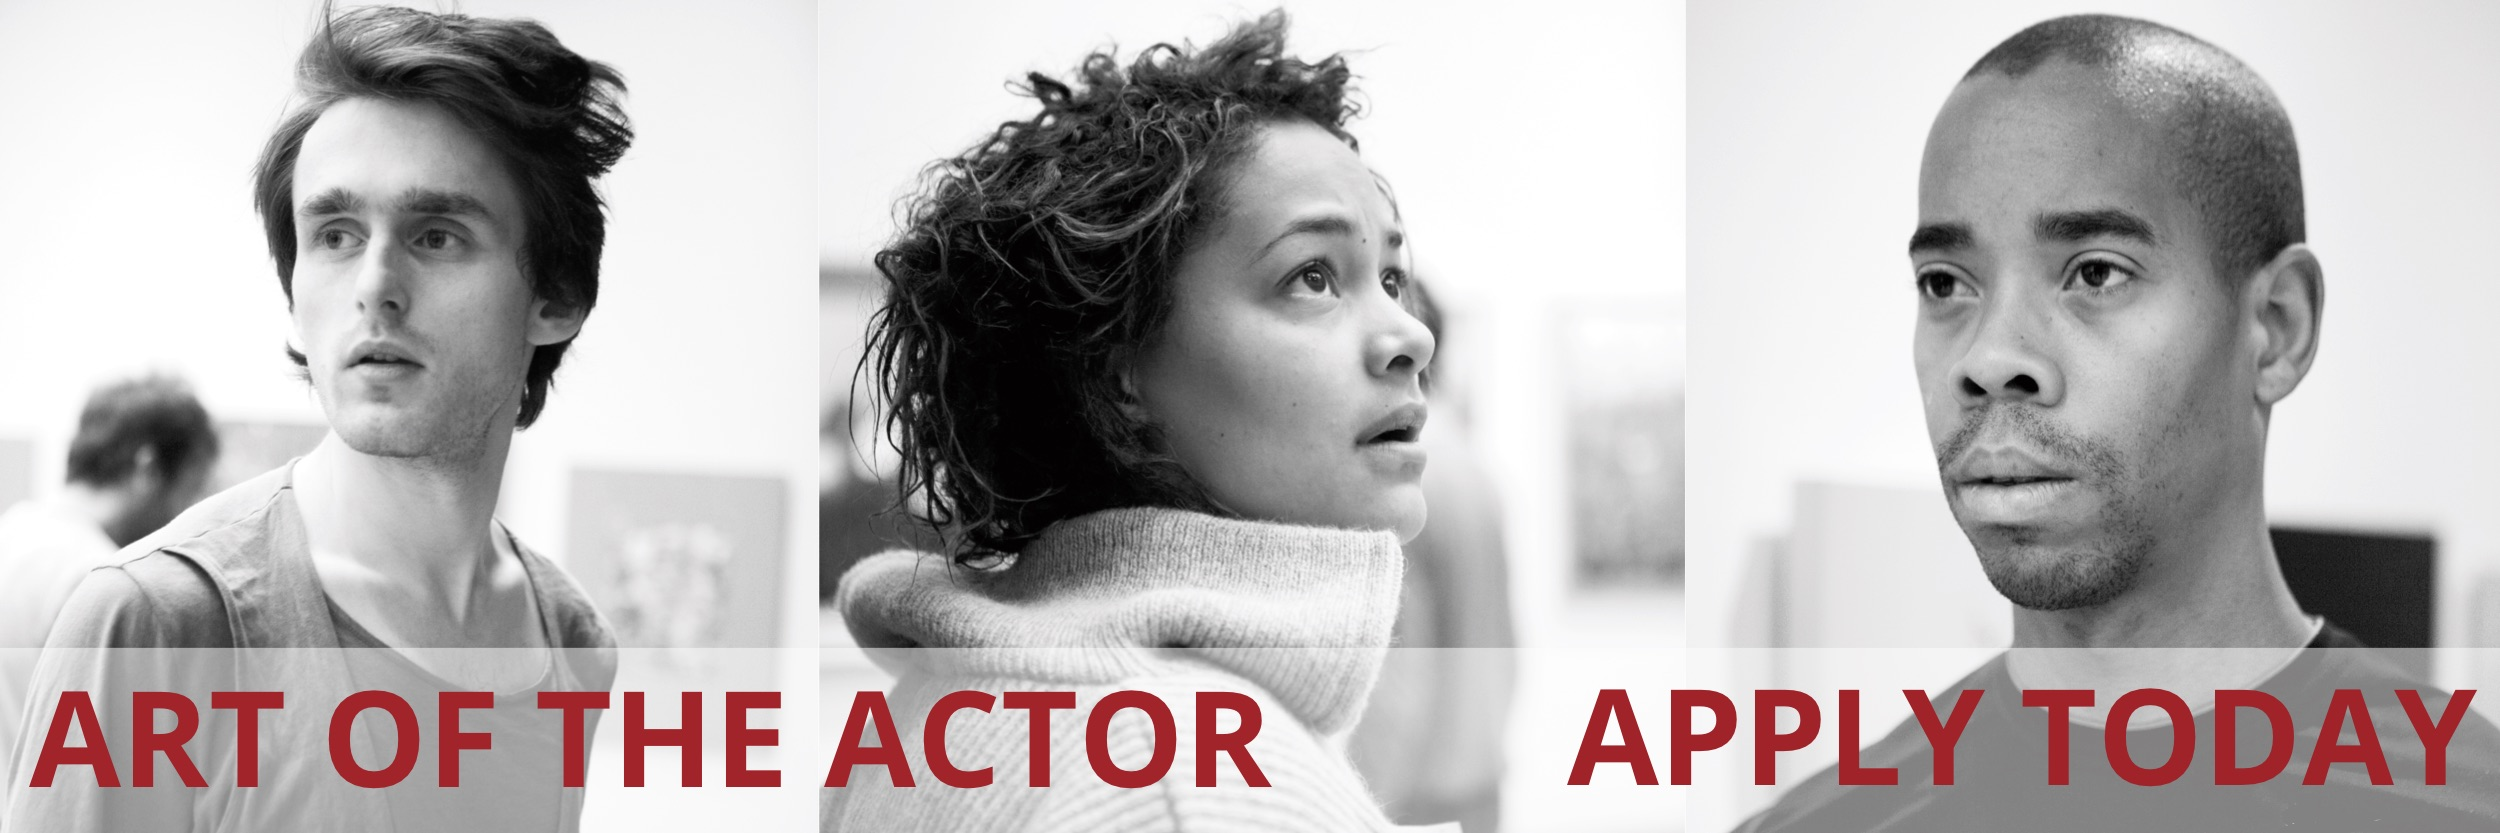 art-of-the-actor-banner